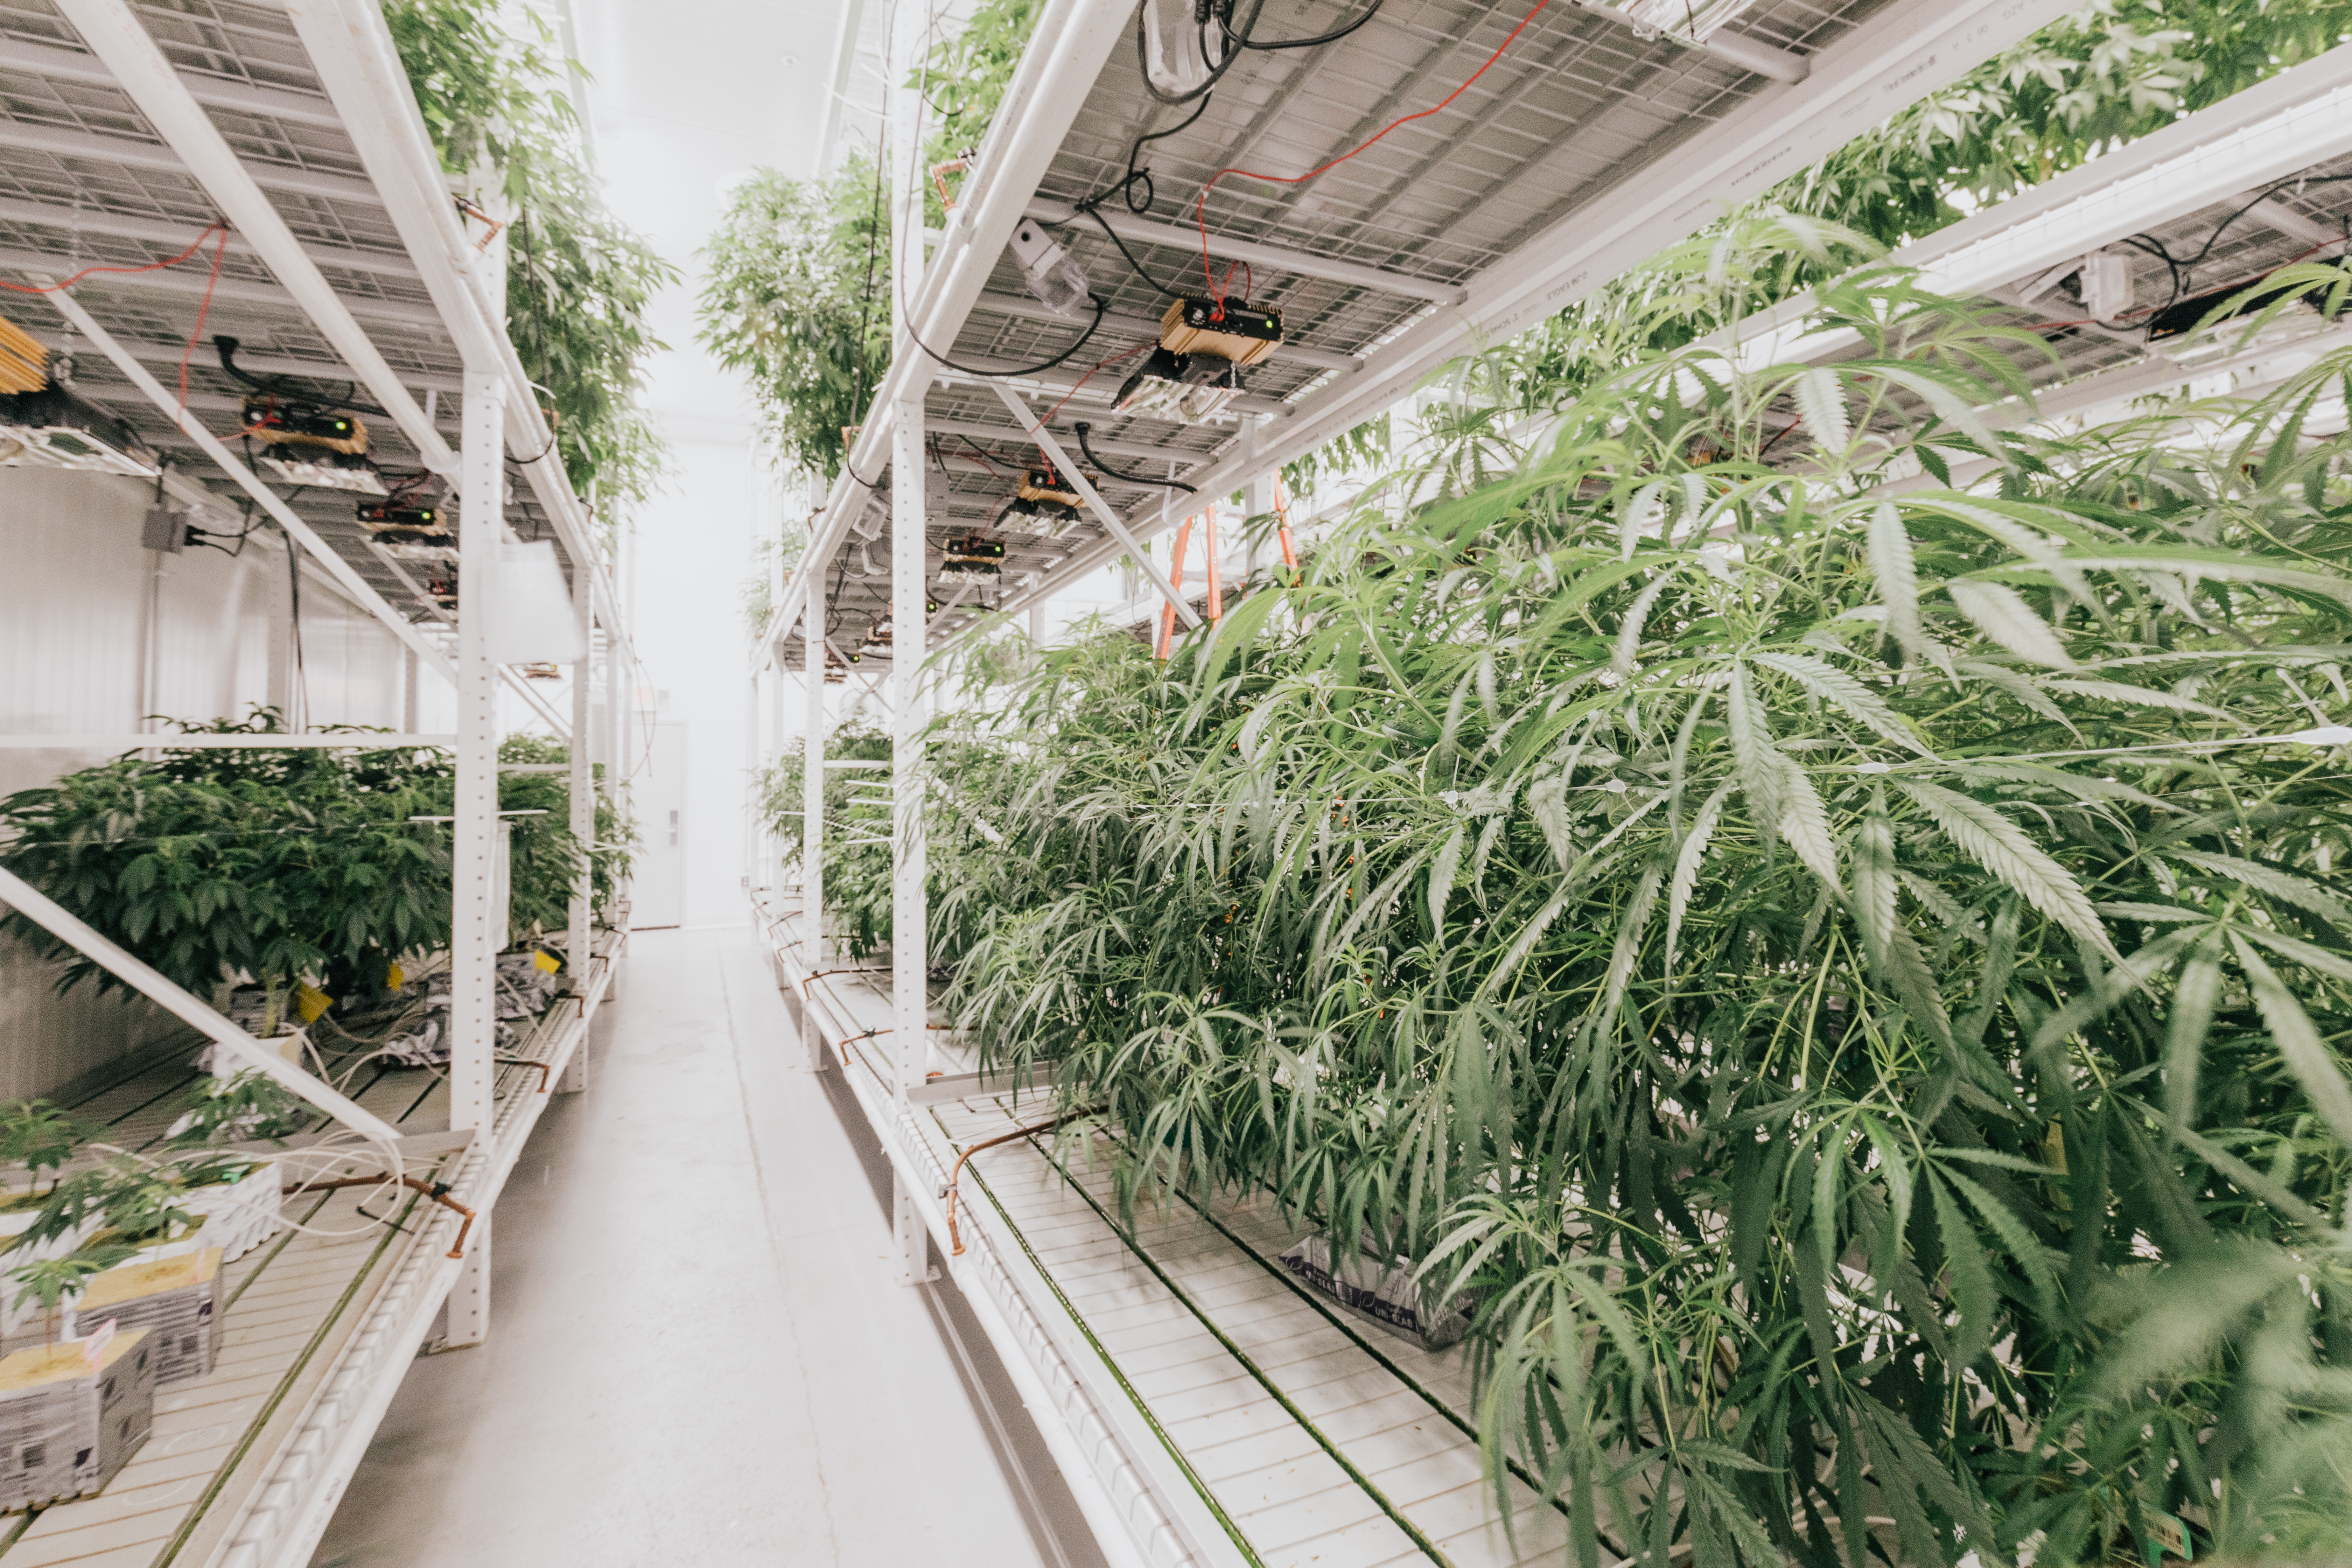 Vantage Builders Completes State-of-the-Art Cannabis Cultivation Facility For Sanctuary Medicinals in Littleton, Mass.